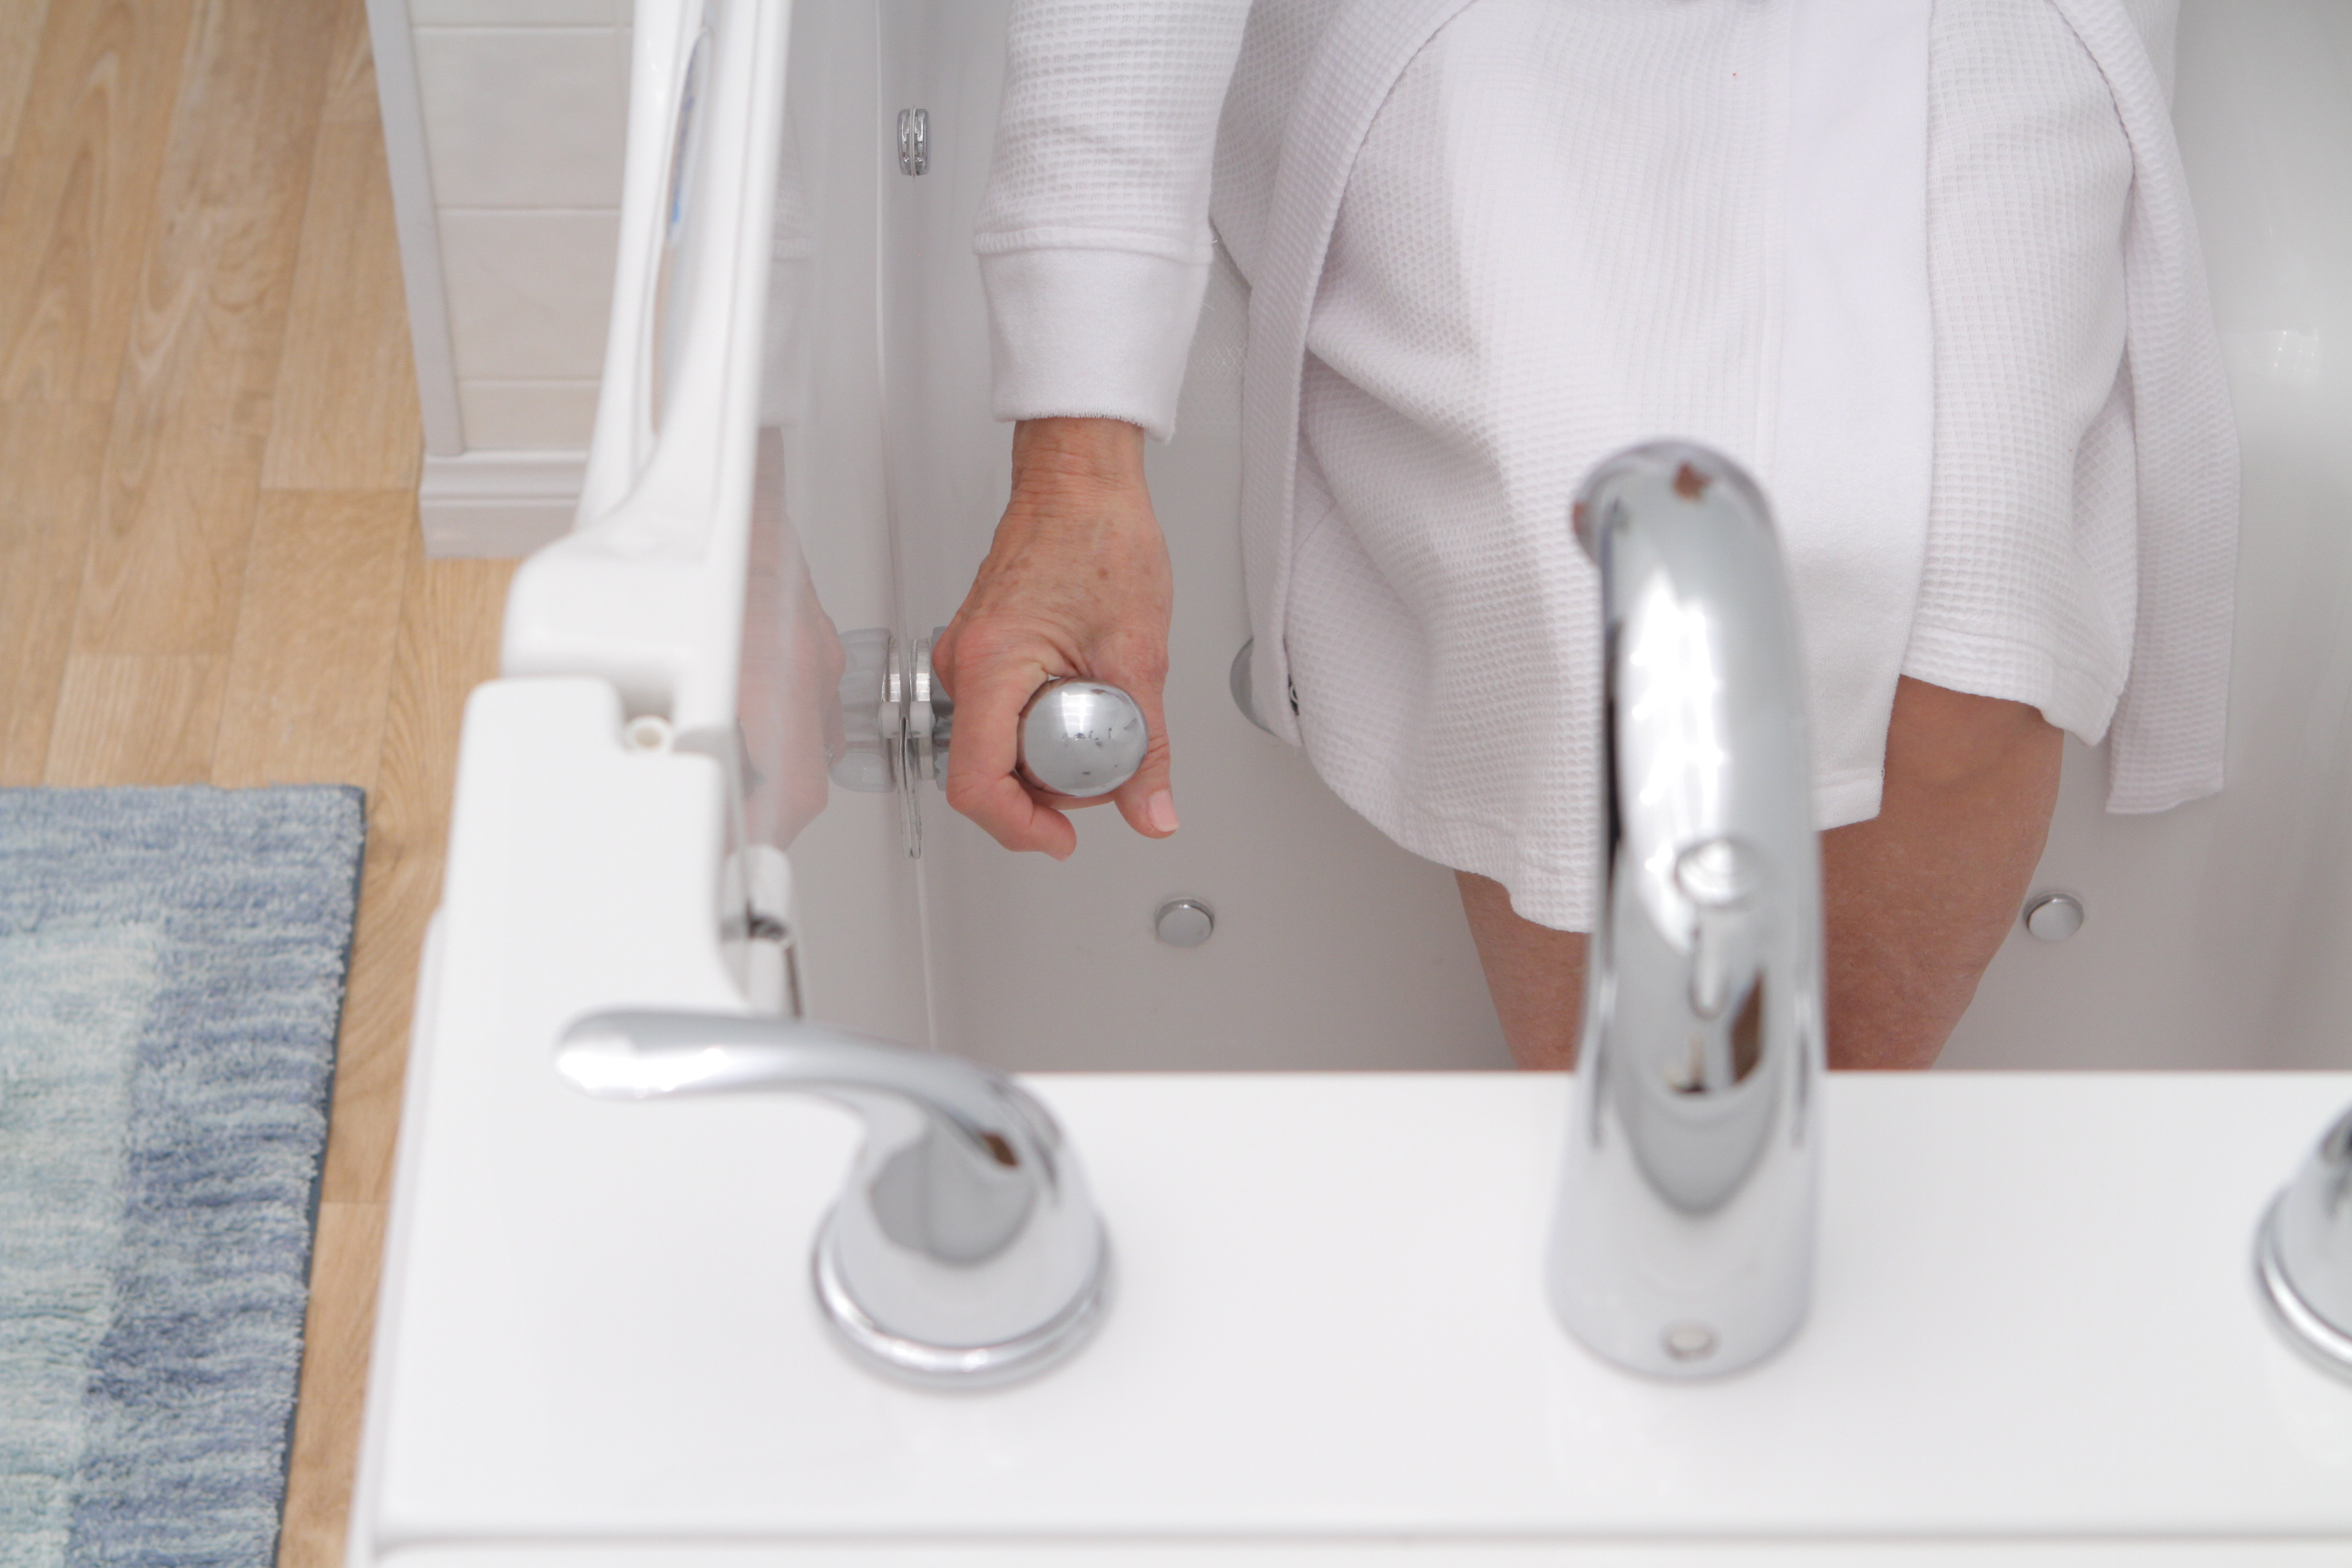 Walk-in Tubs – Safe Step Walk-in Tubs